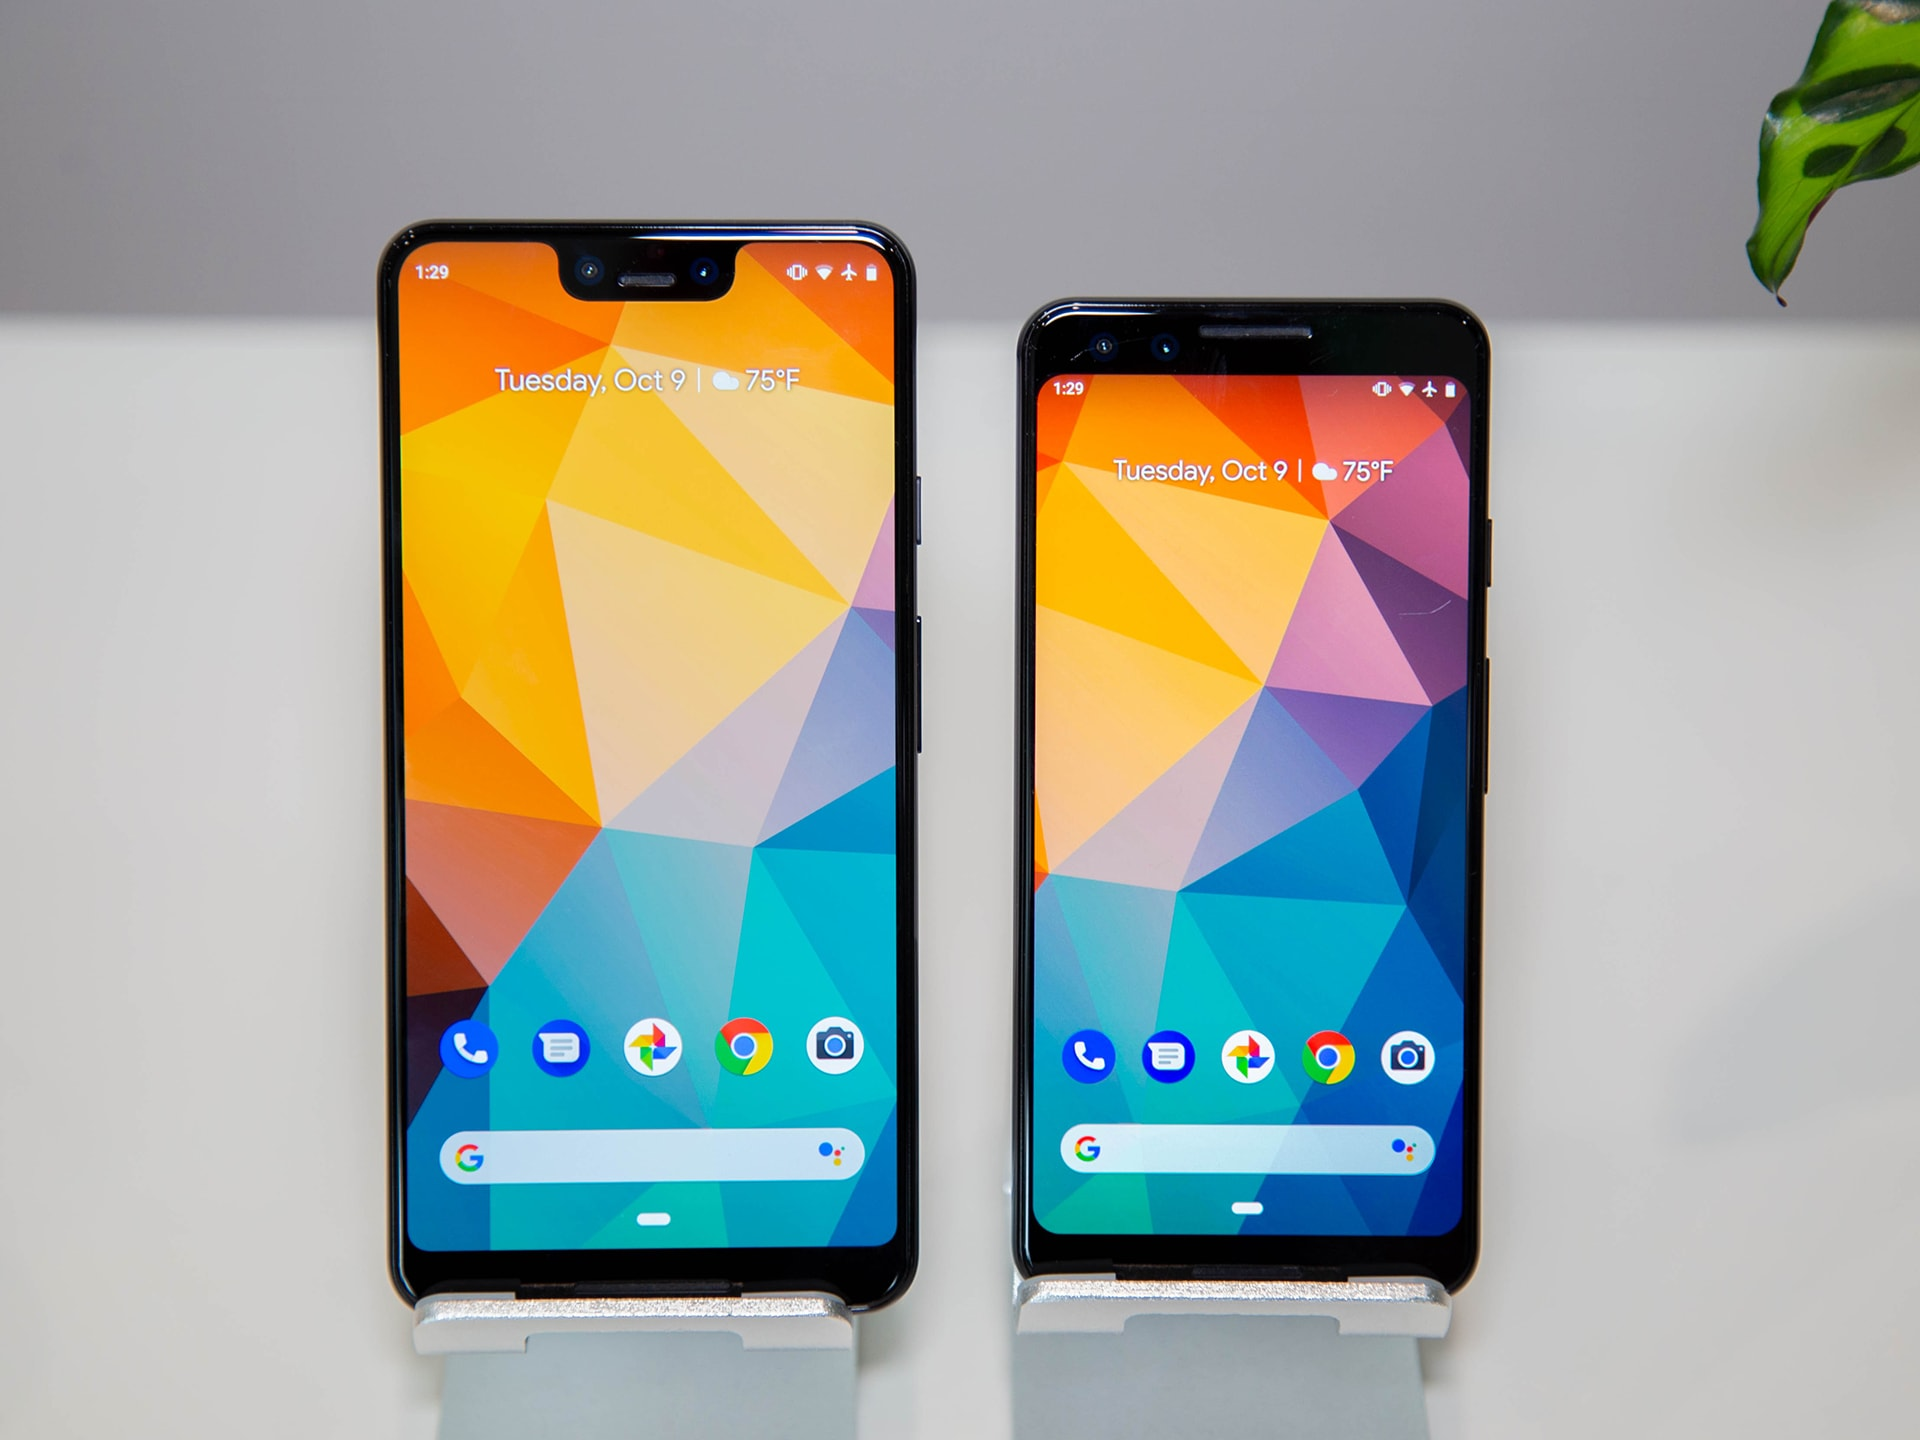 2. Google Pixel 3 and Pixel 3XL – The Runner-up of Our Best Smartphone Camera 2019 List